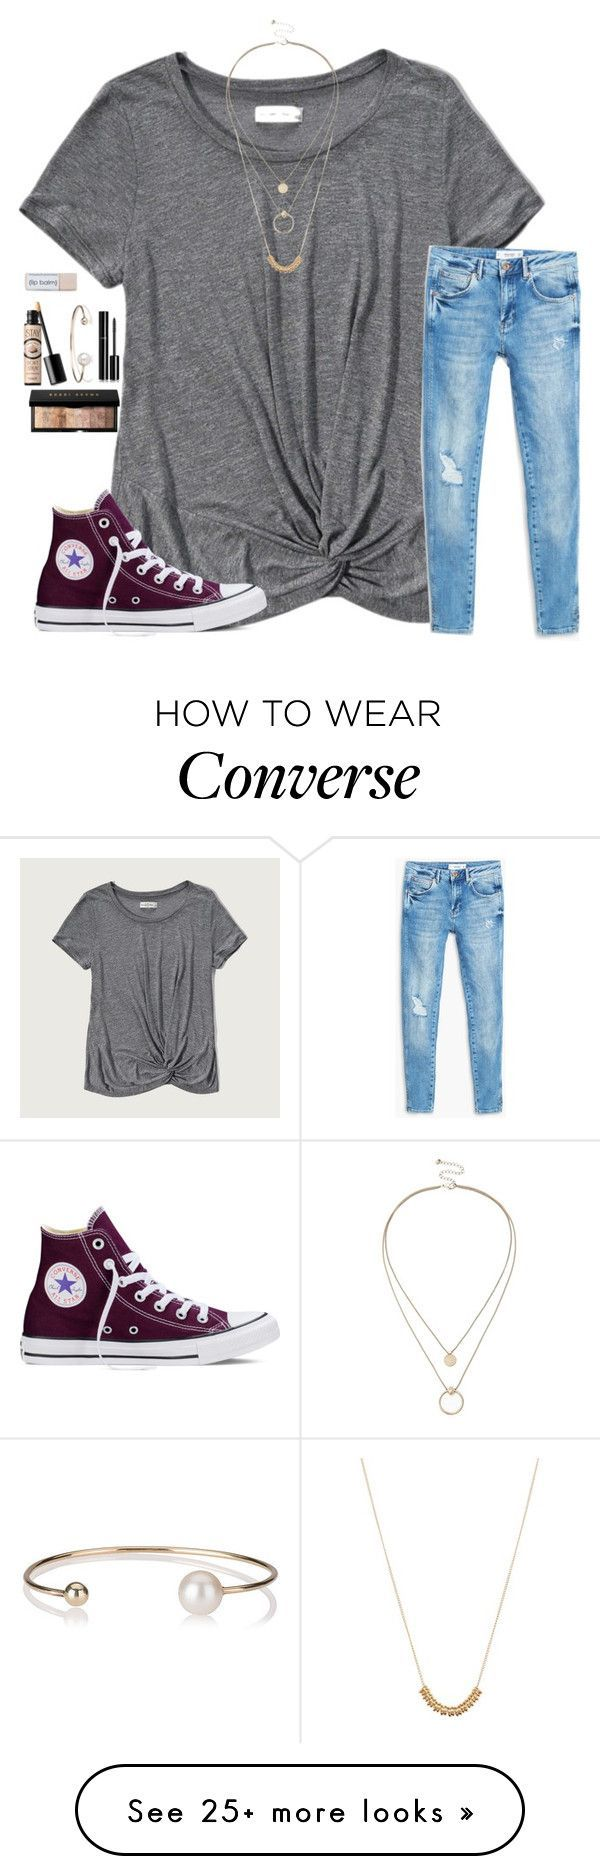 """And now I just sit in silence."" by madison426 on Polyvore featuring Abercrombie & Fitch, Converse, MANGO, ASOS, Sole Society, Chanel, Letters By Zoe, Benefit and Bobbi Brown Cosmetics"